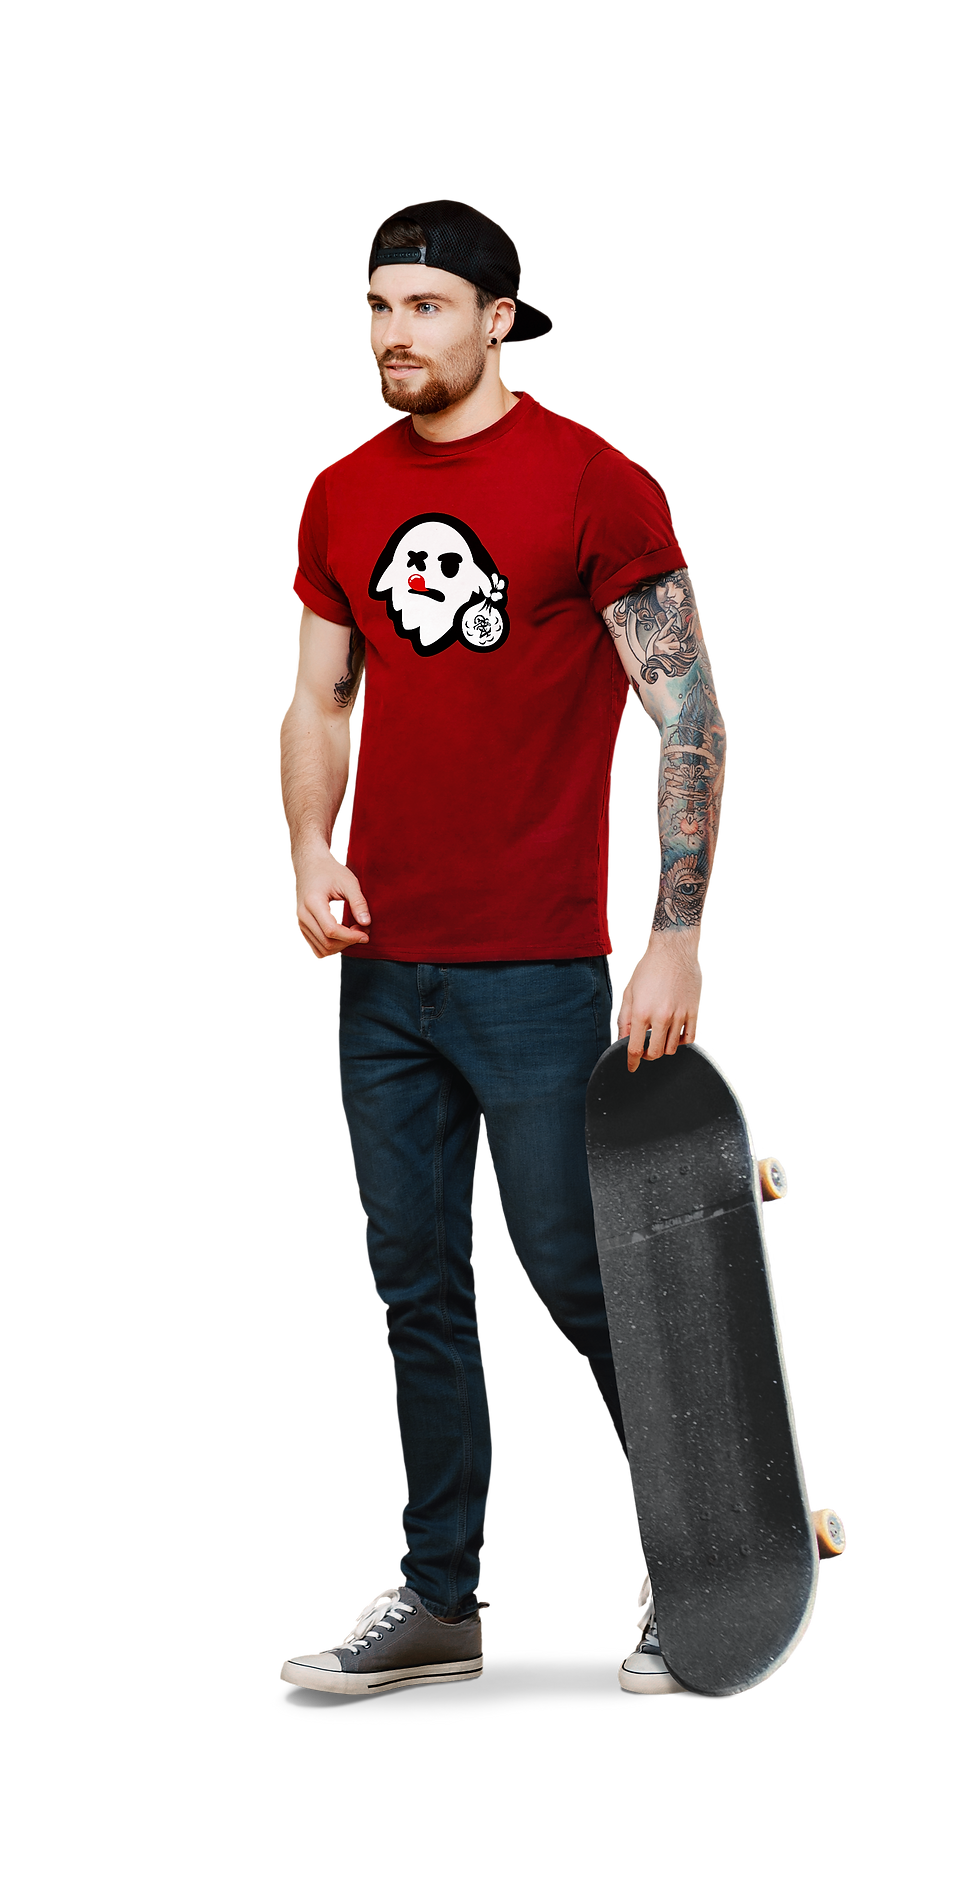 Tattoed skater holding skateboard walking, wearing a ghost graphic red shirt, wearing jeans and chucks.